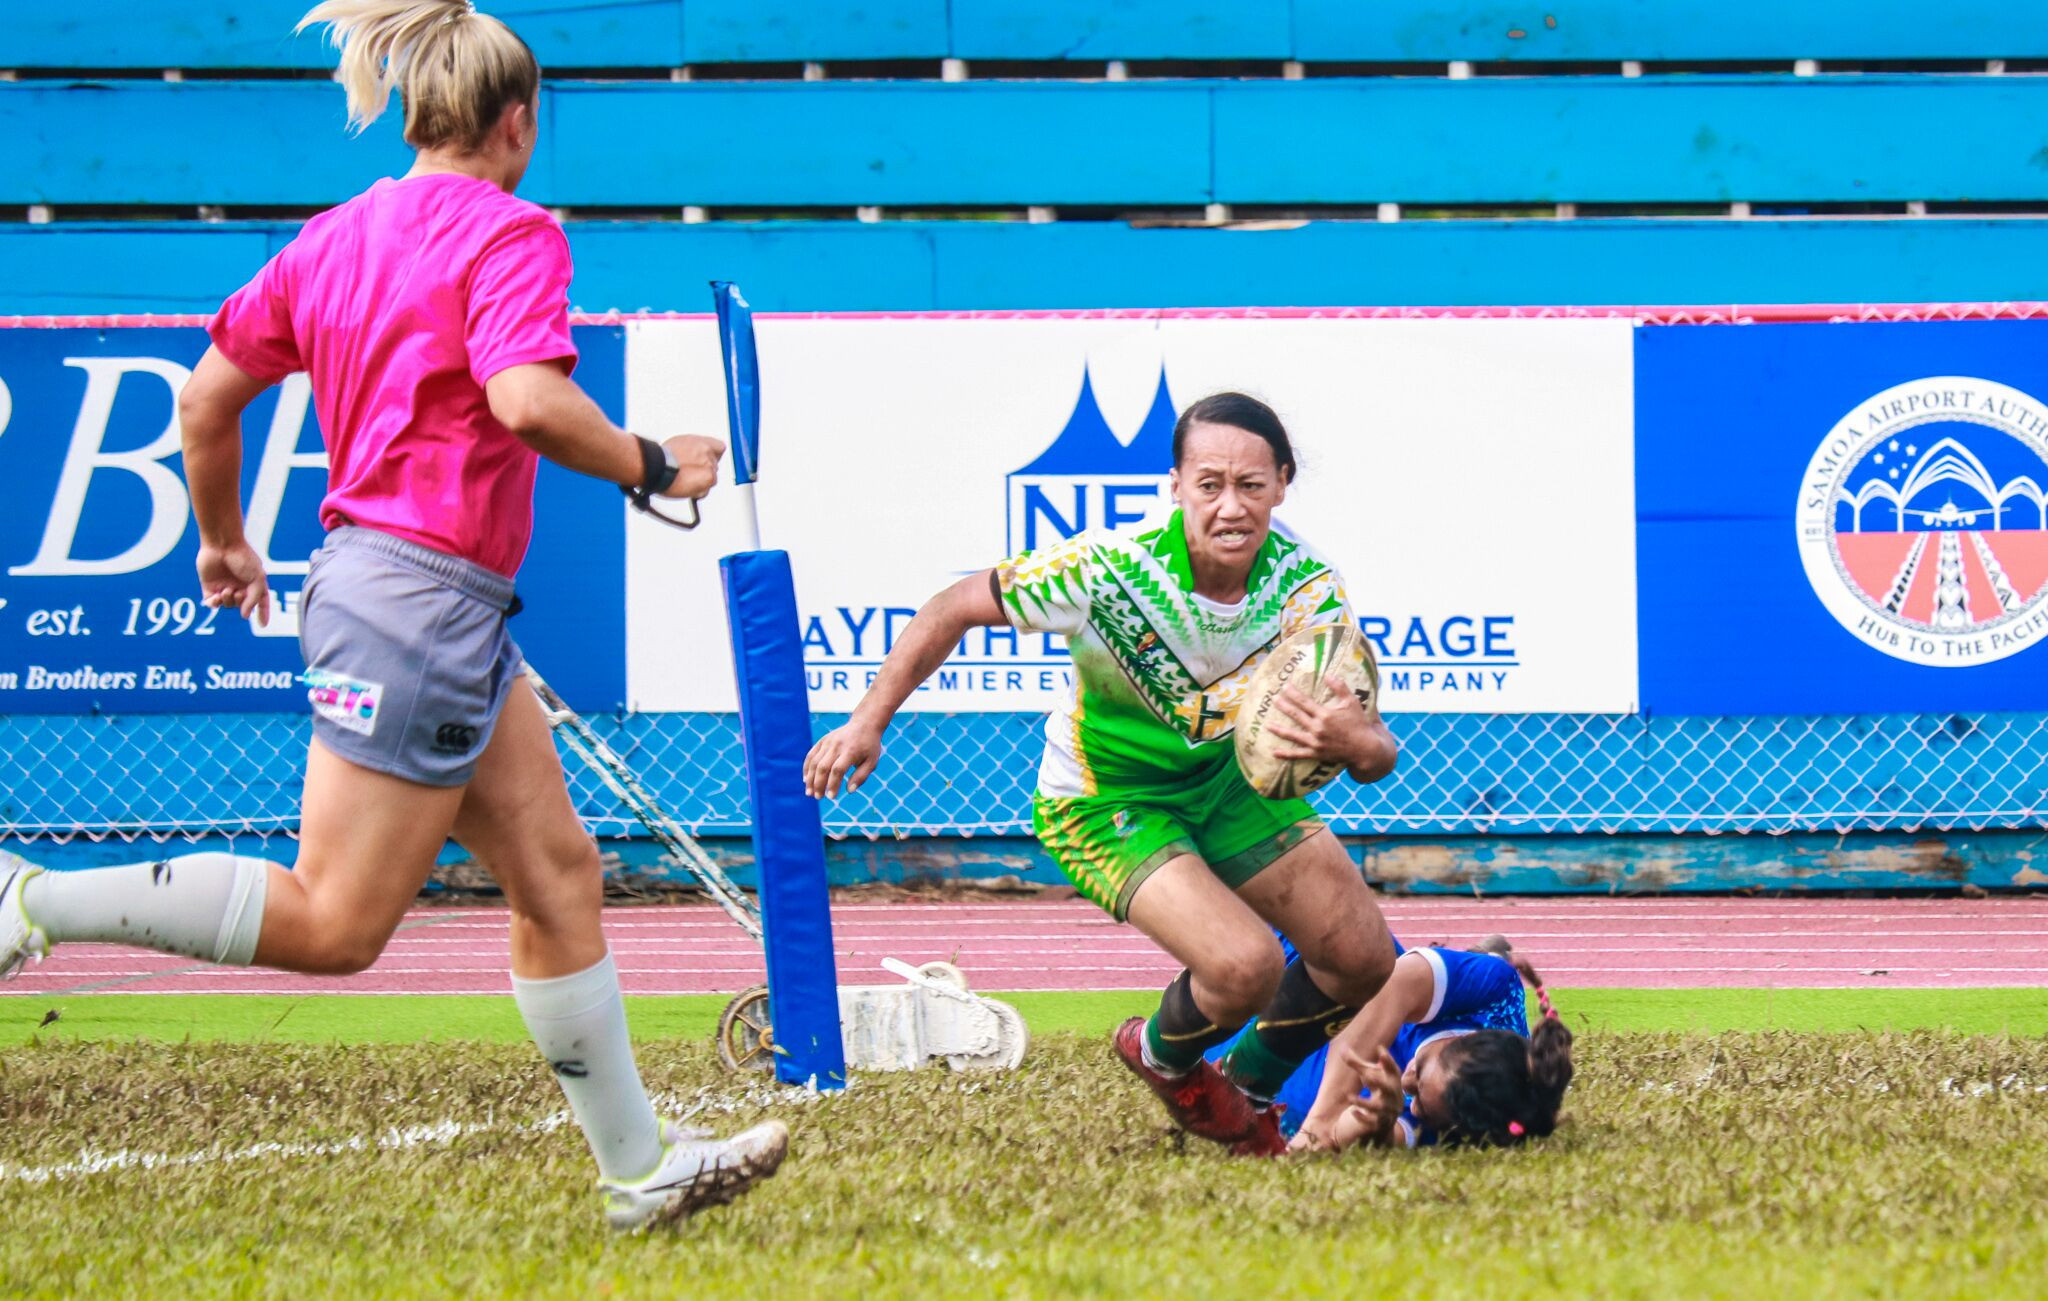 History was made earlier today with the first women's rugby league nines matches taking place at the Pacific Games ©Games News Service